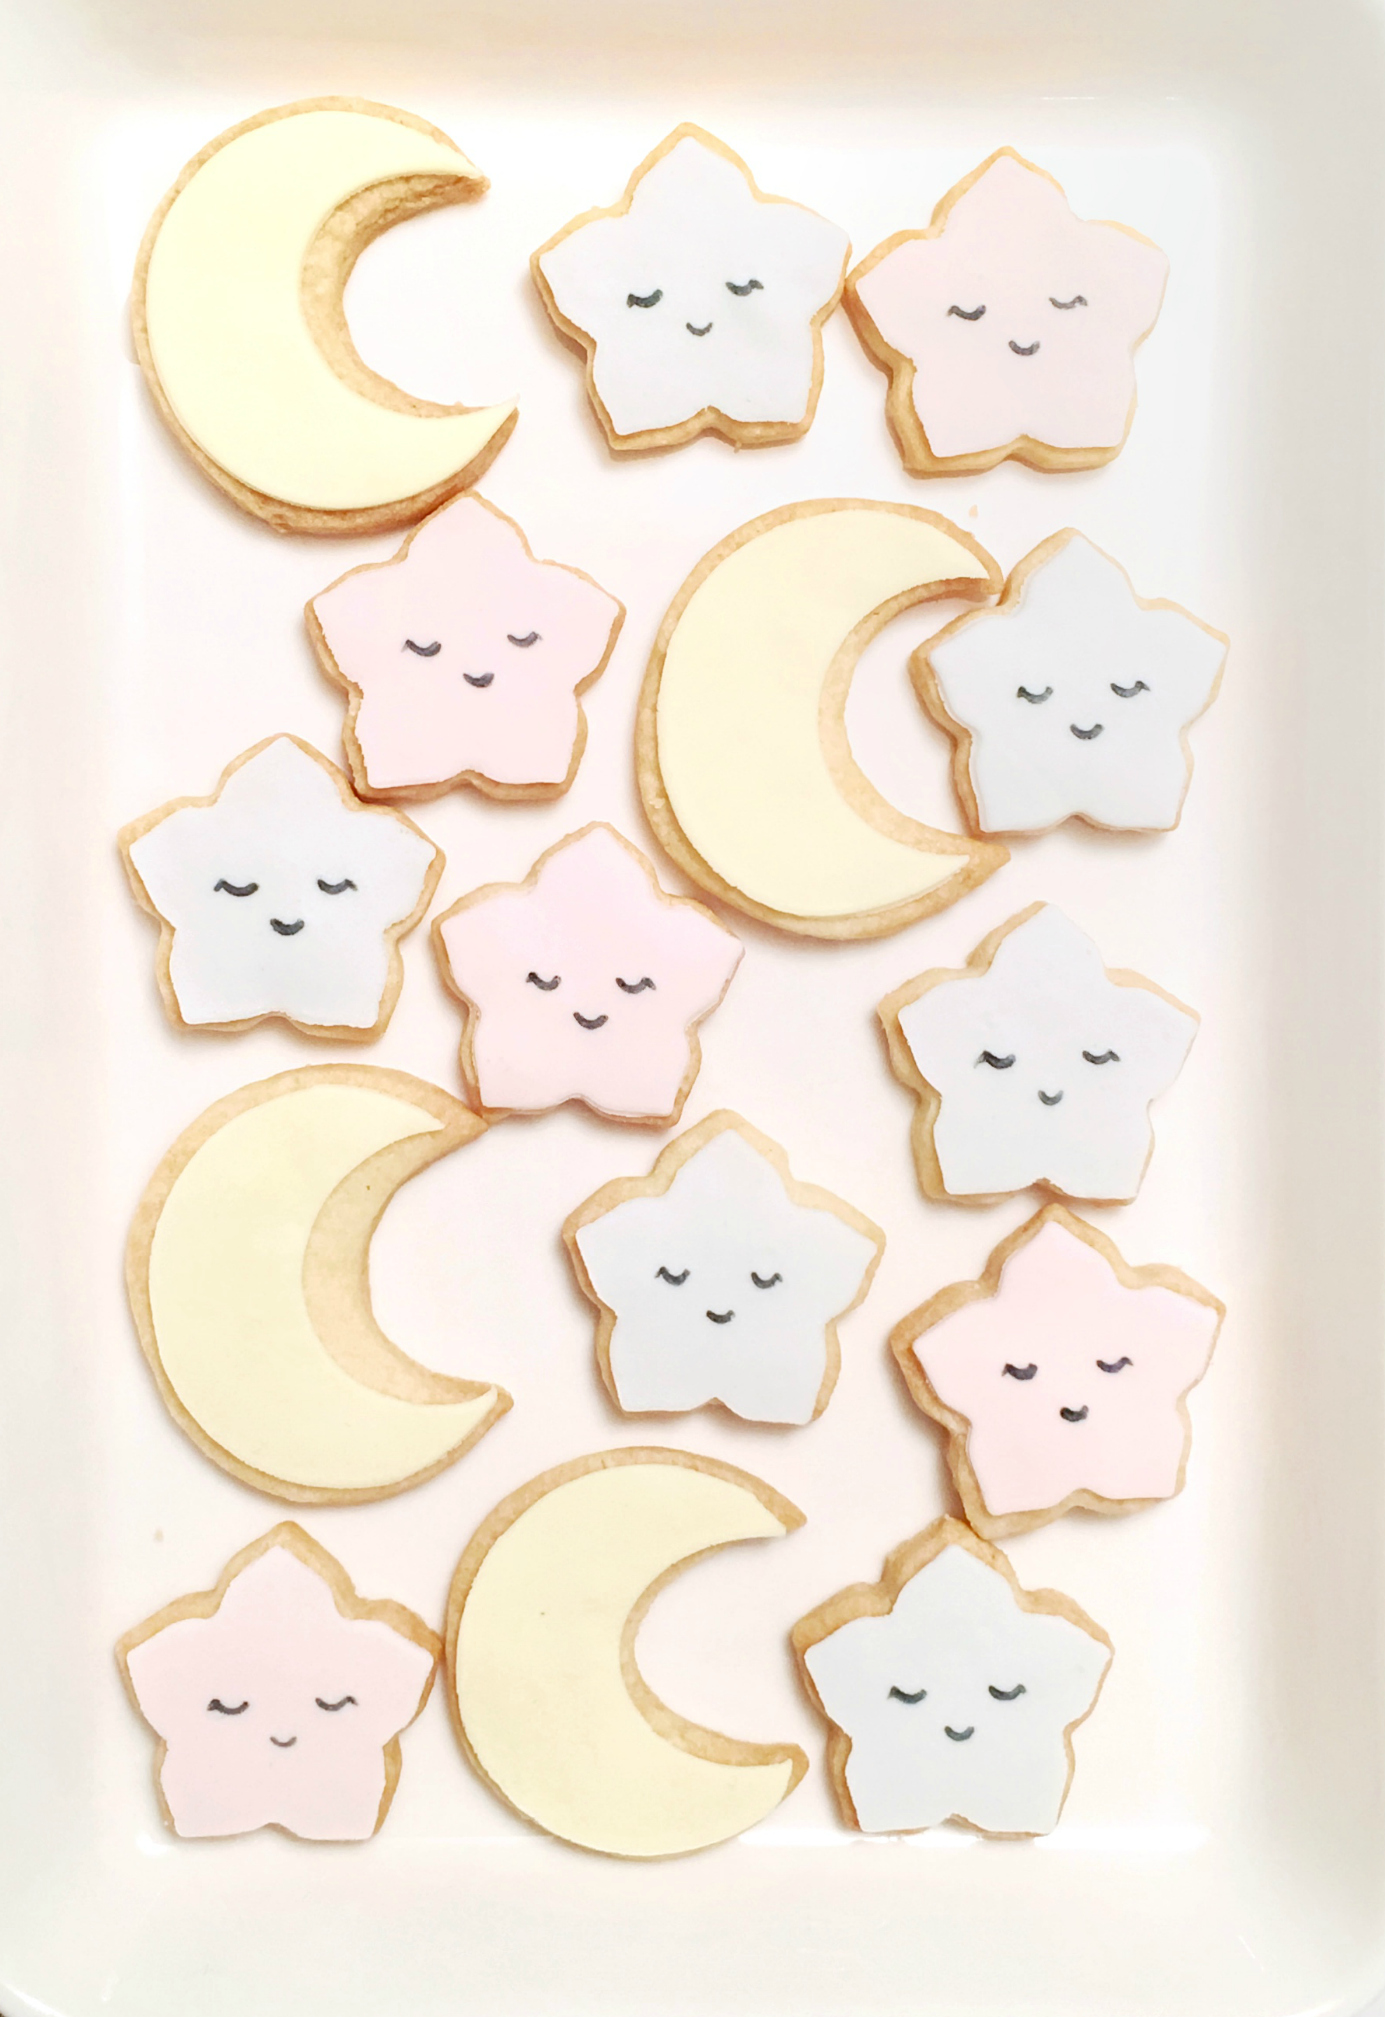 Baby twinkle star and moon 100 days first birthday cookies dessert table Cherie Kelly London Hong Kong